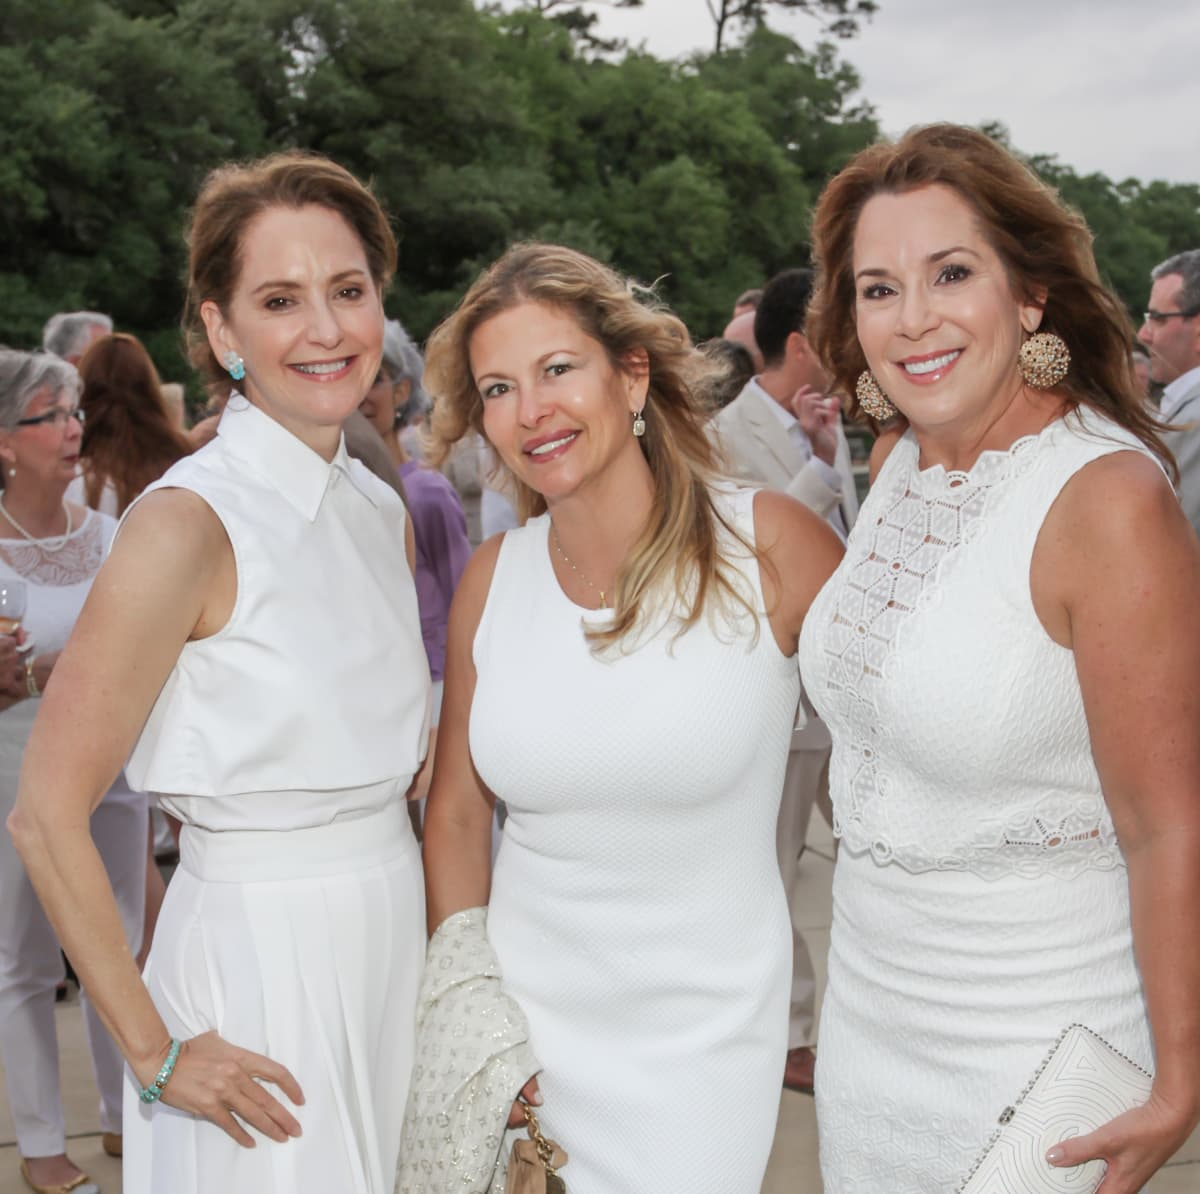 Hermann Park Evening in the Park 5/16, Laurie Morian, Rose Capobianco, Cherie Flores